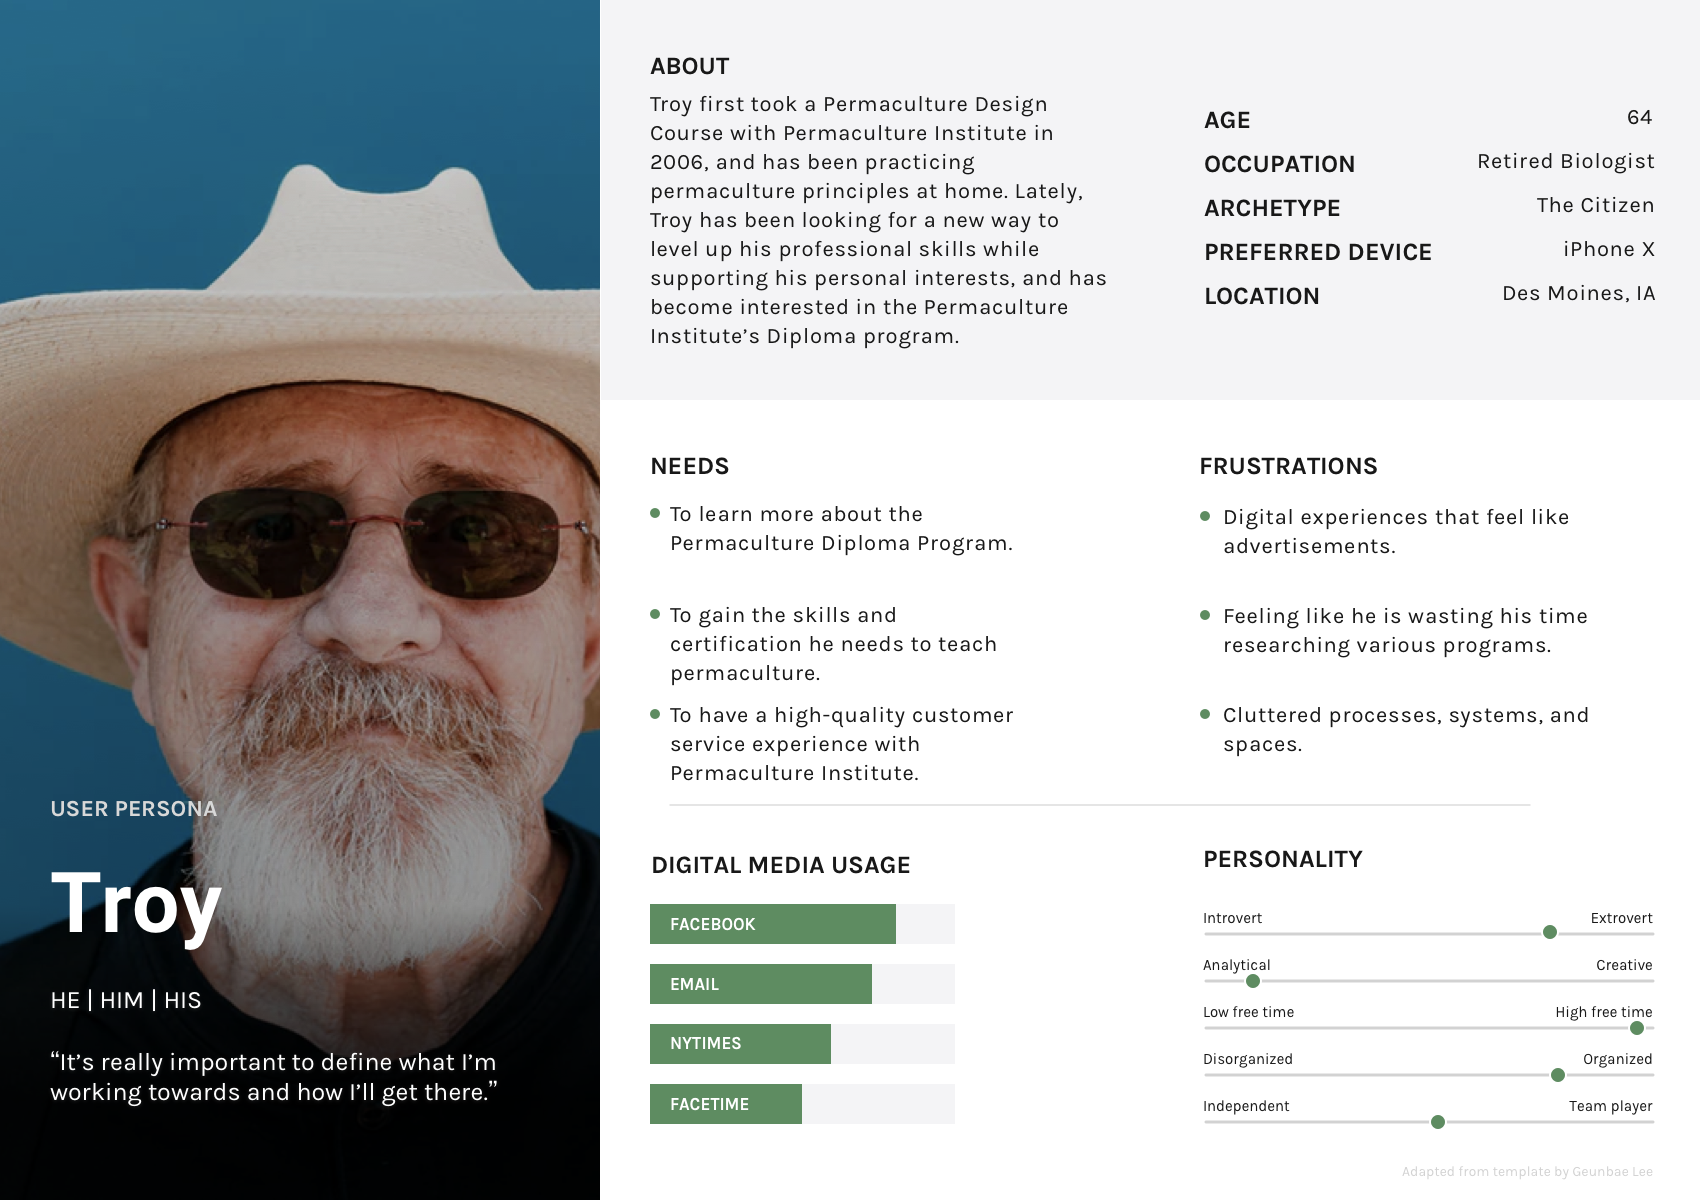 Document showing an older man in his 60s wearing a hat and sunglasses. The persona represents one user group of people specifically interested in Permaculture Institute.